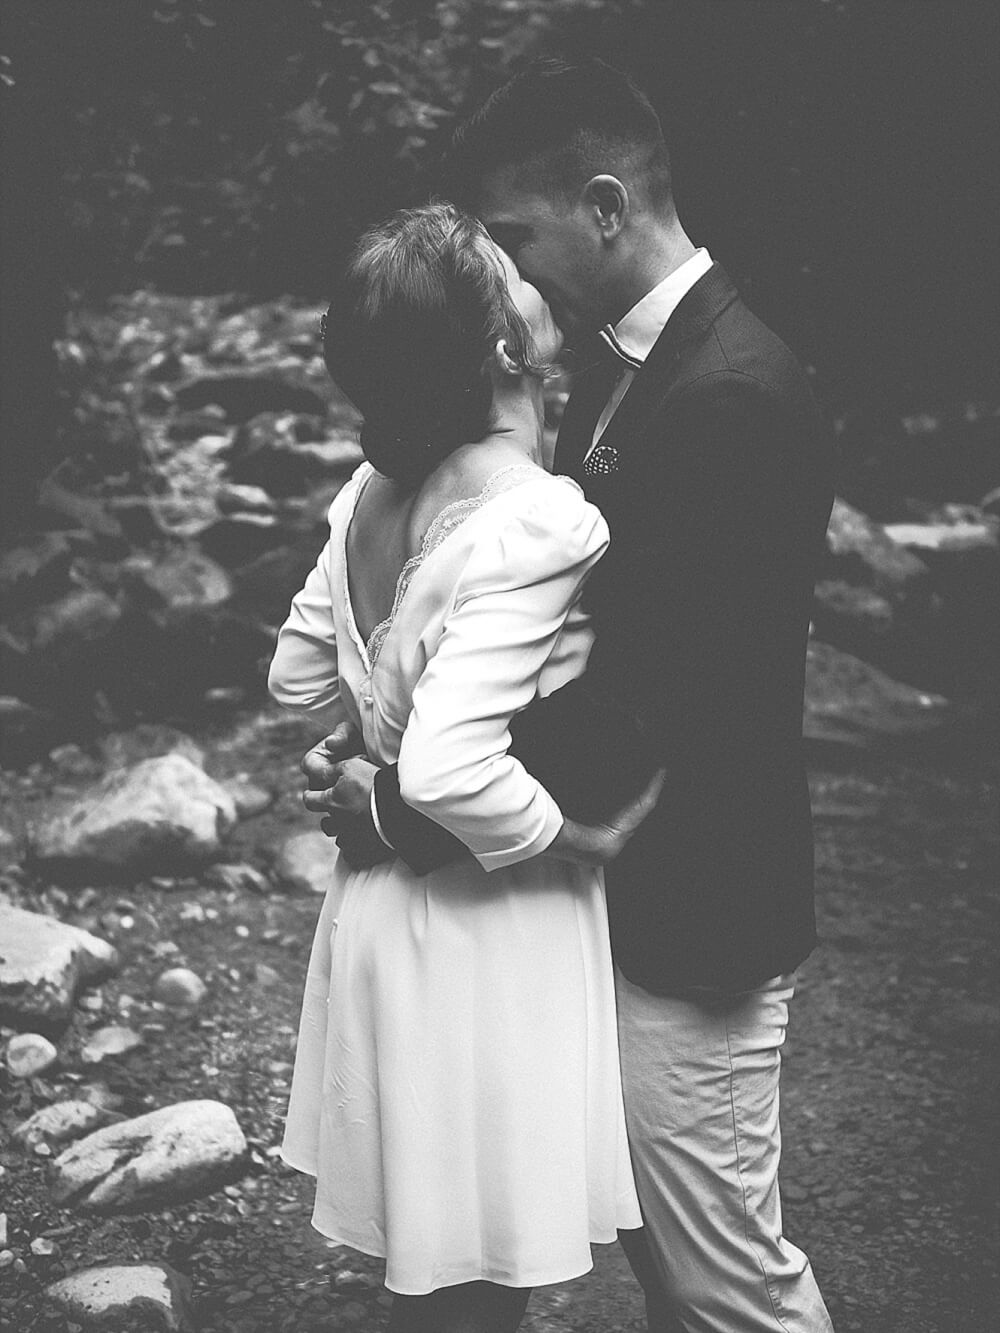 ©LWP_Margaux&Pascal_2018.08.18-152-2